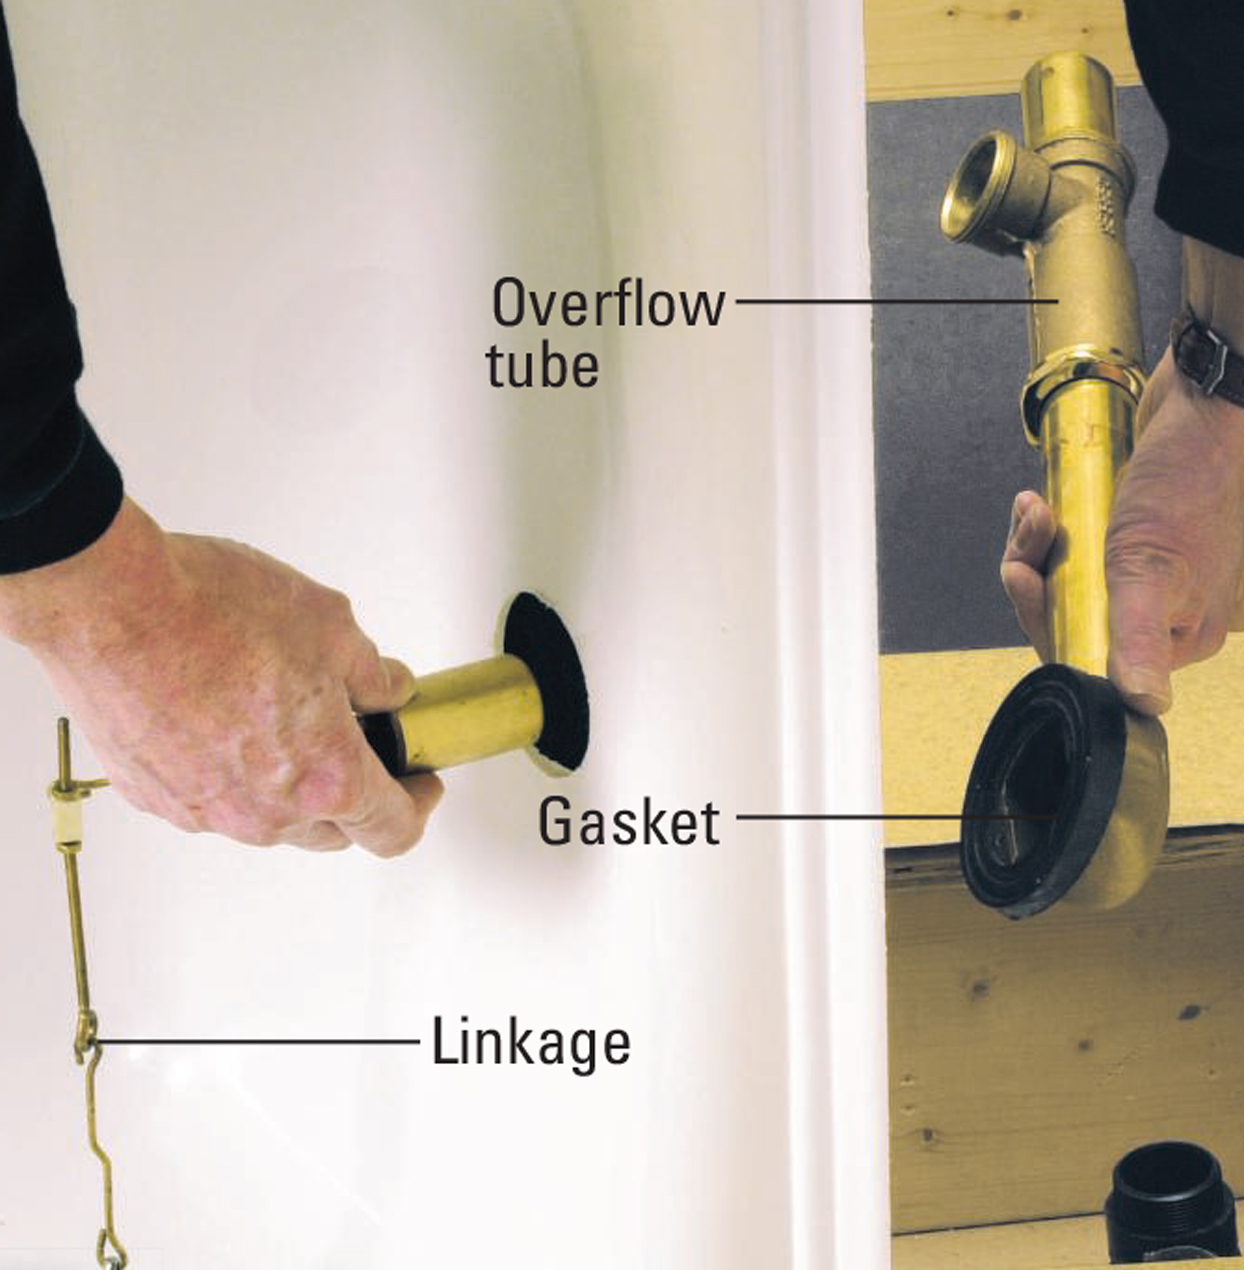 dry fit tubes